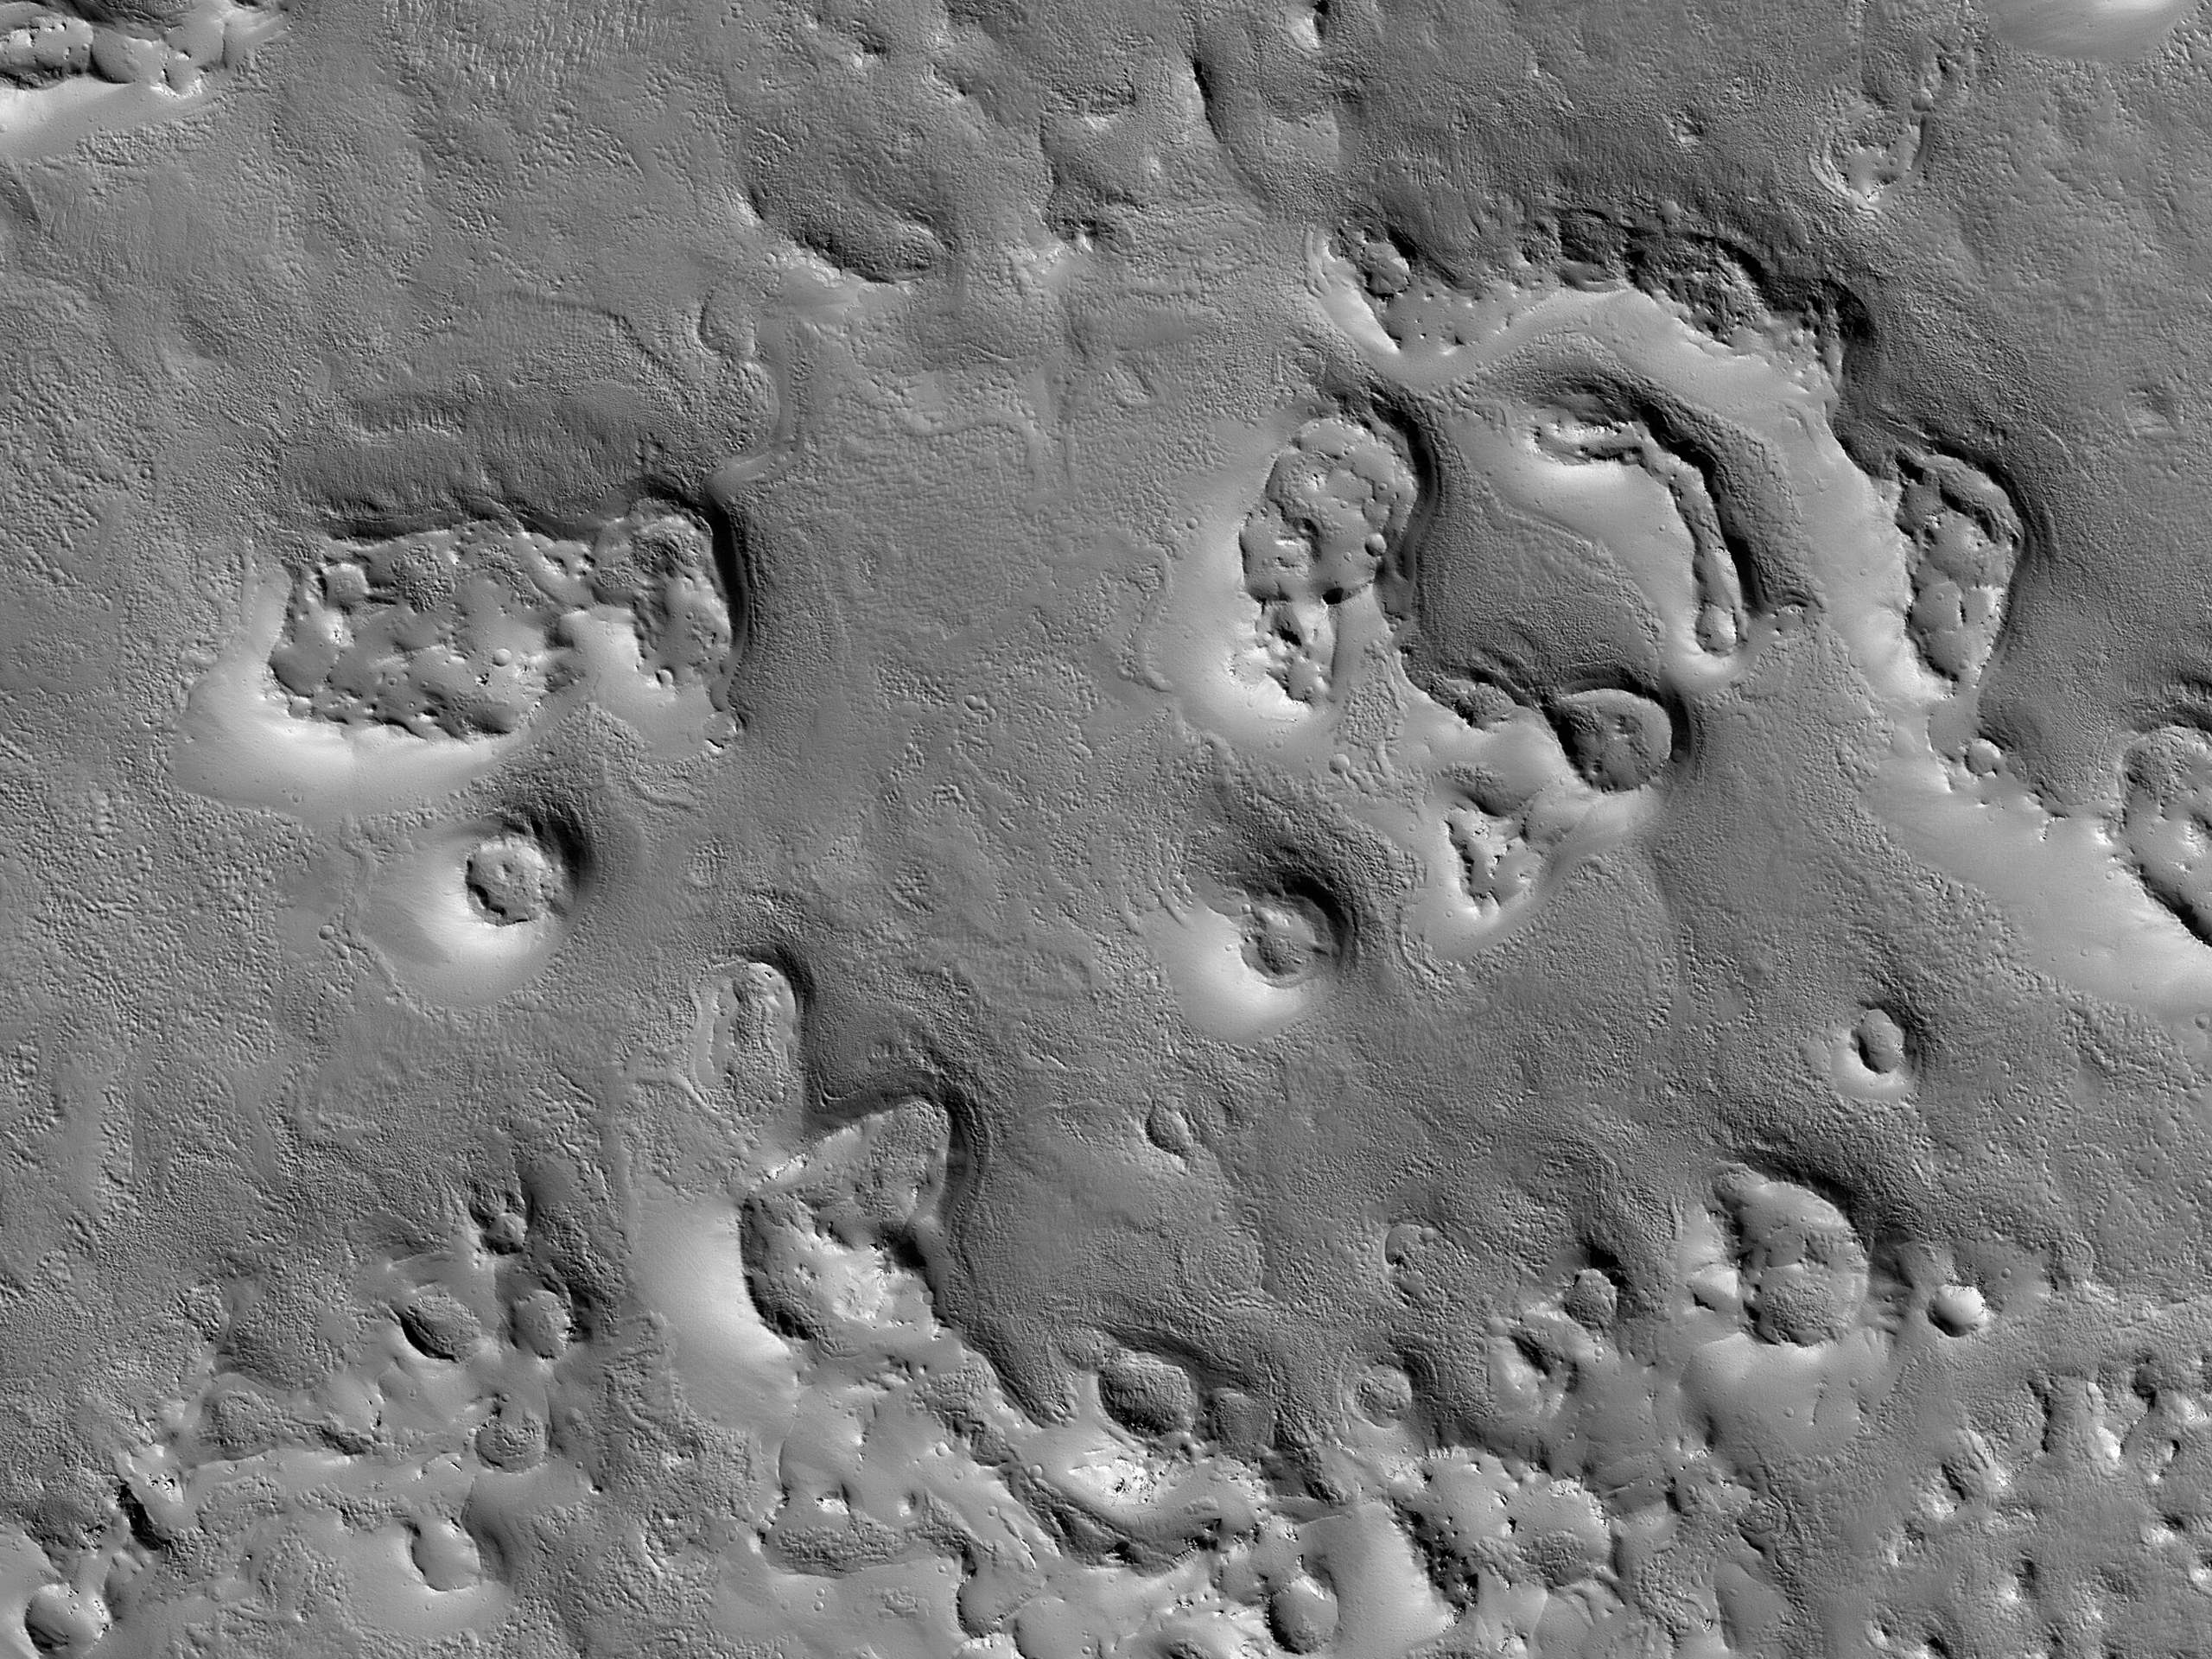 Circular Features North of Olympus Mons